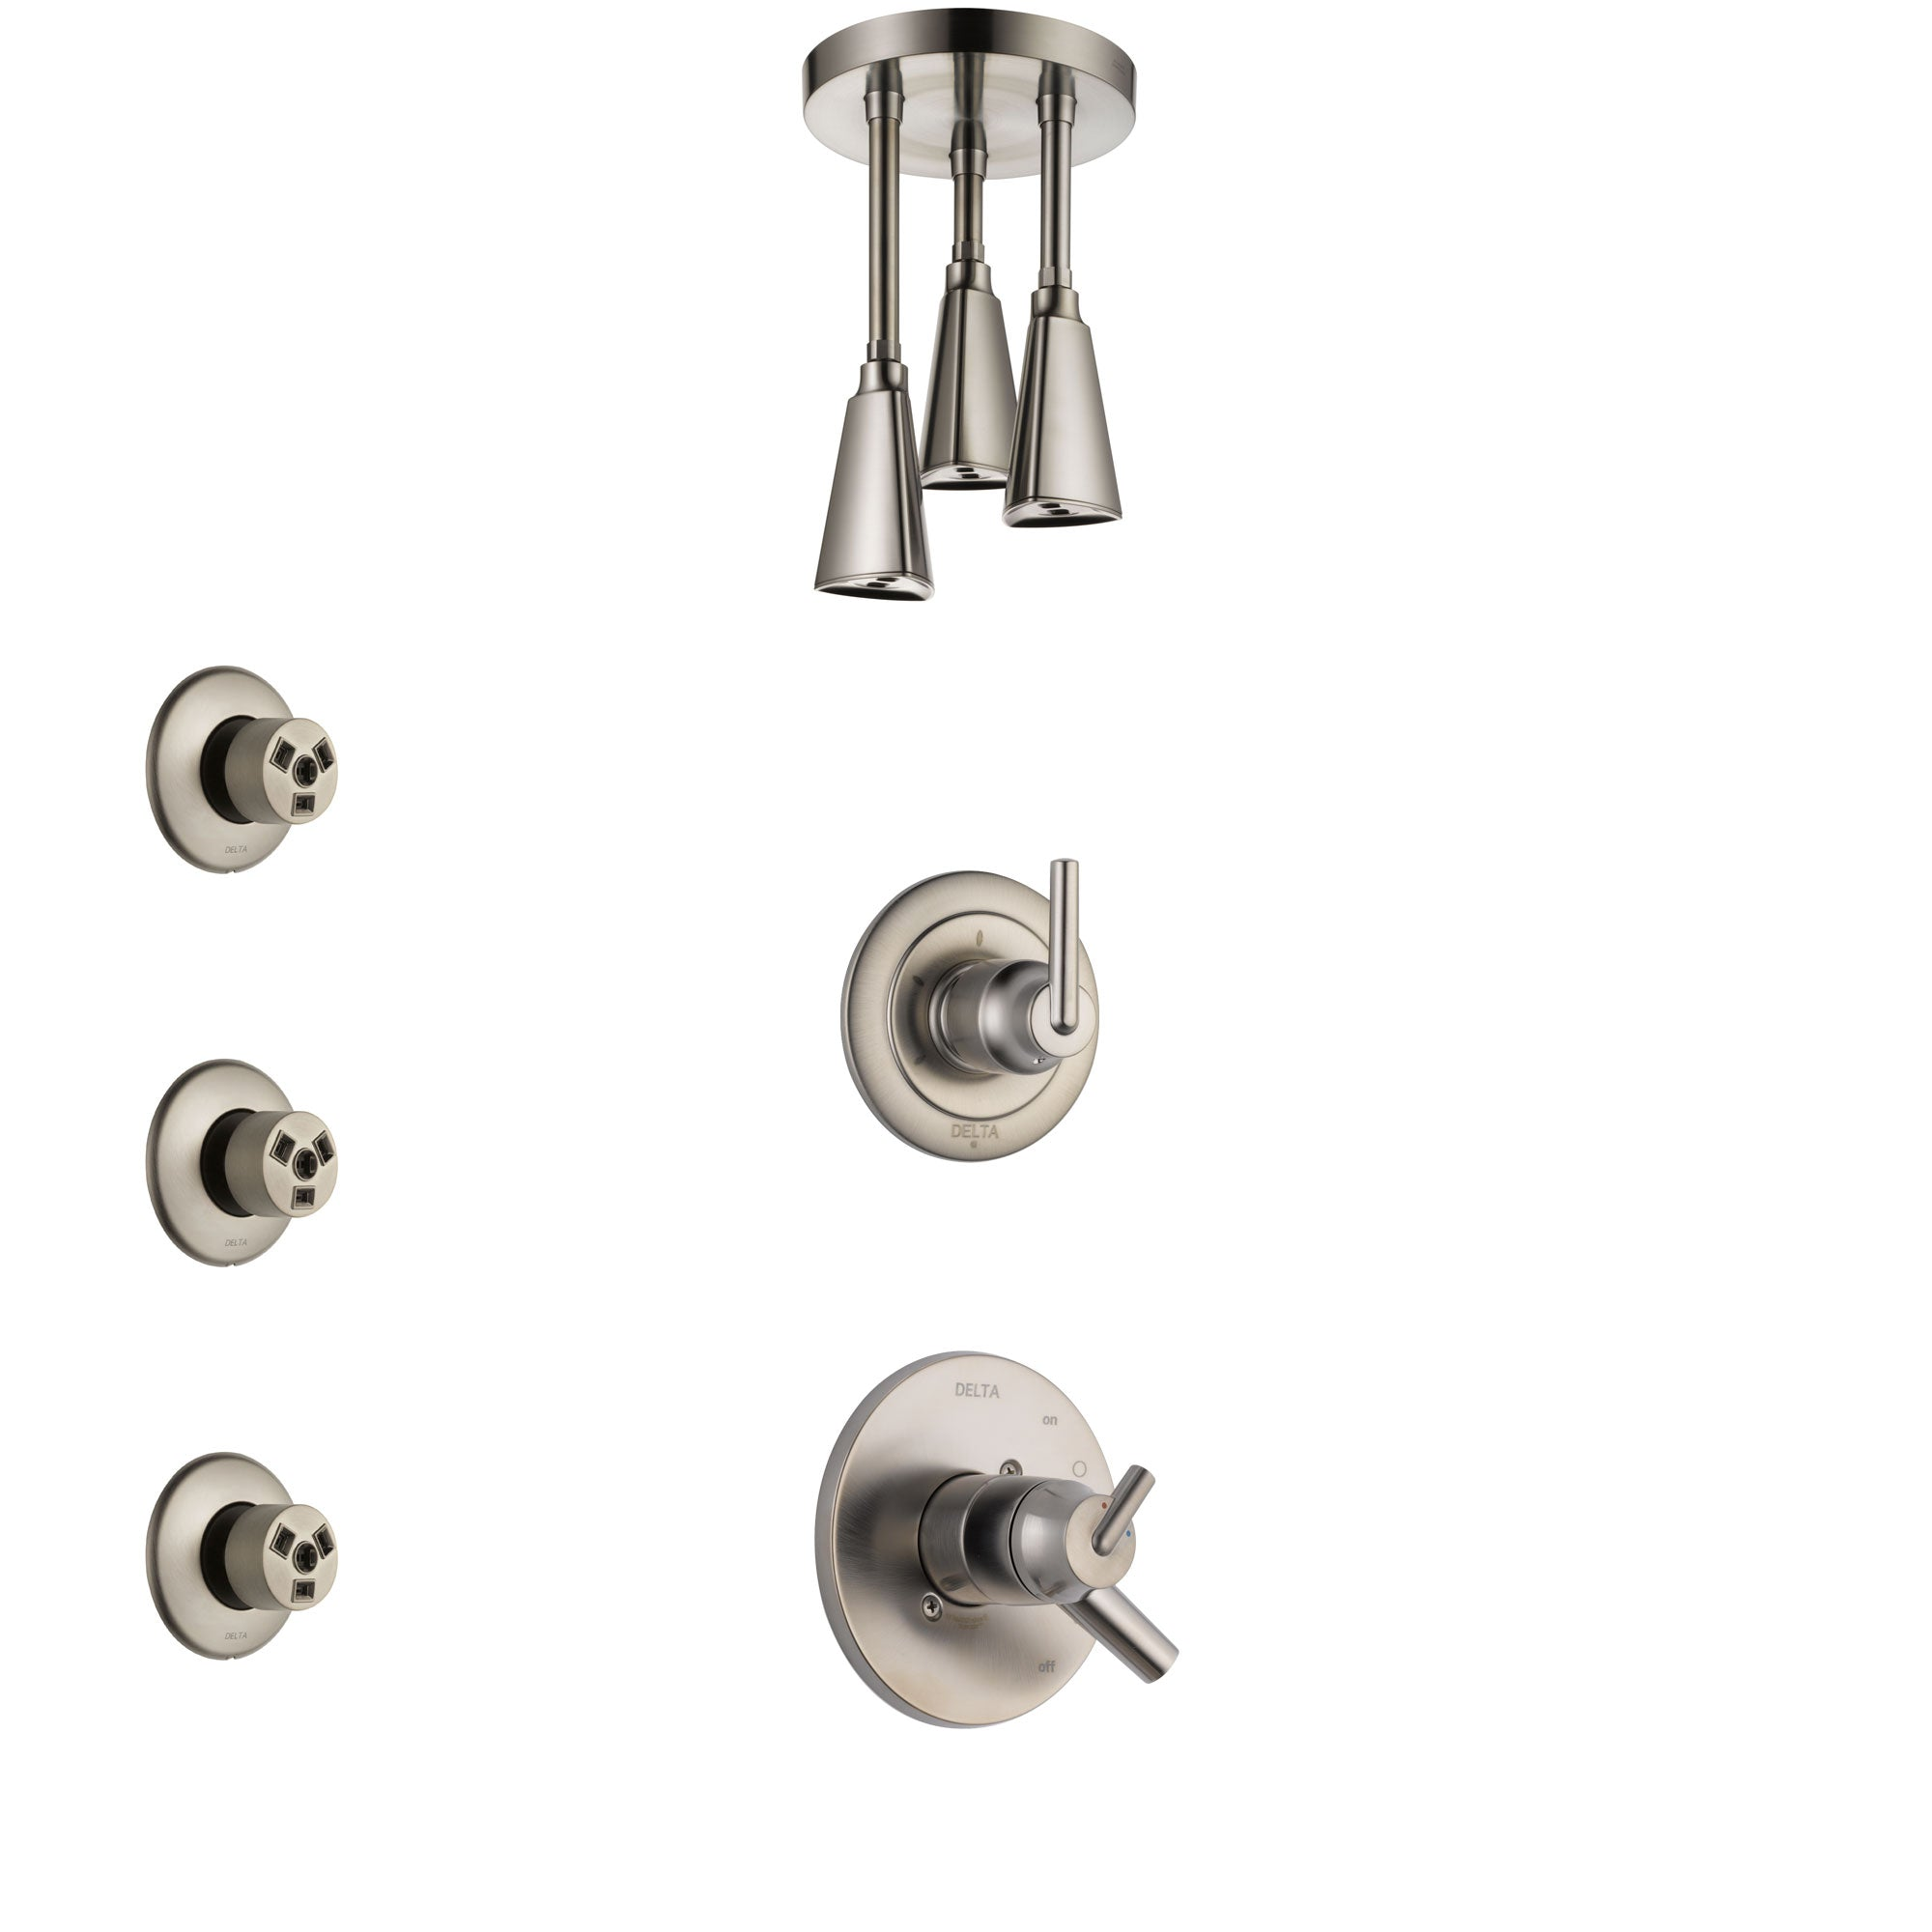 Delta Trinsic Stainless Steel Finish Shower System with Dual Control Handle, 3-Setting Diverter, Ceiling Mount Showerhead, and 3 Body Sprays SS1759SS7